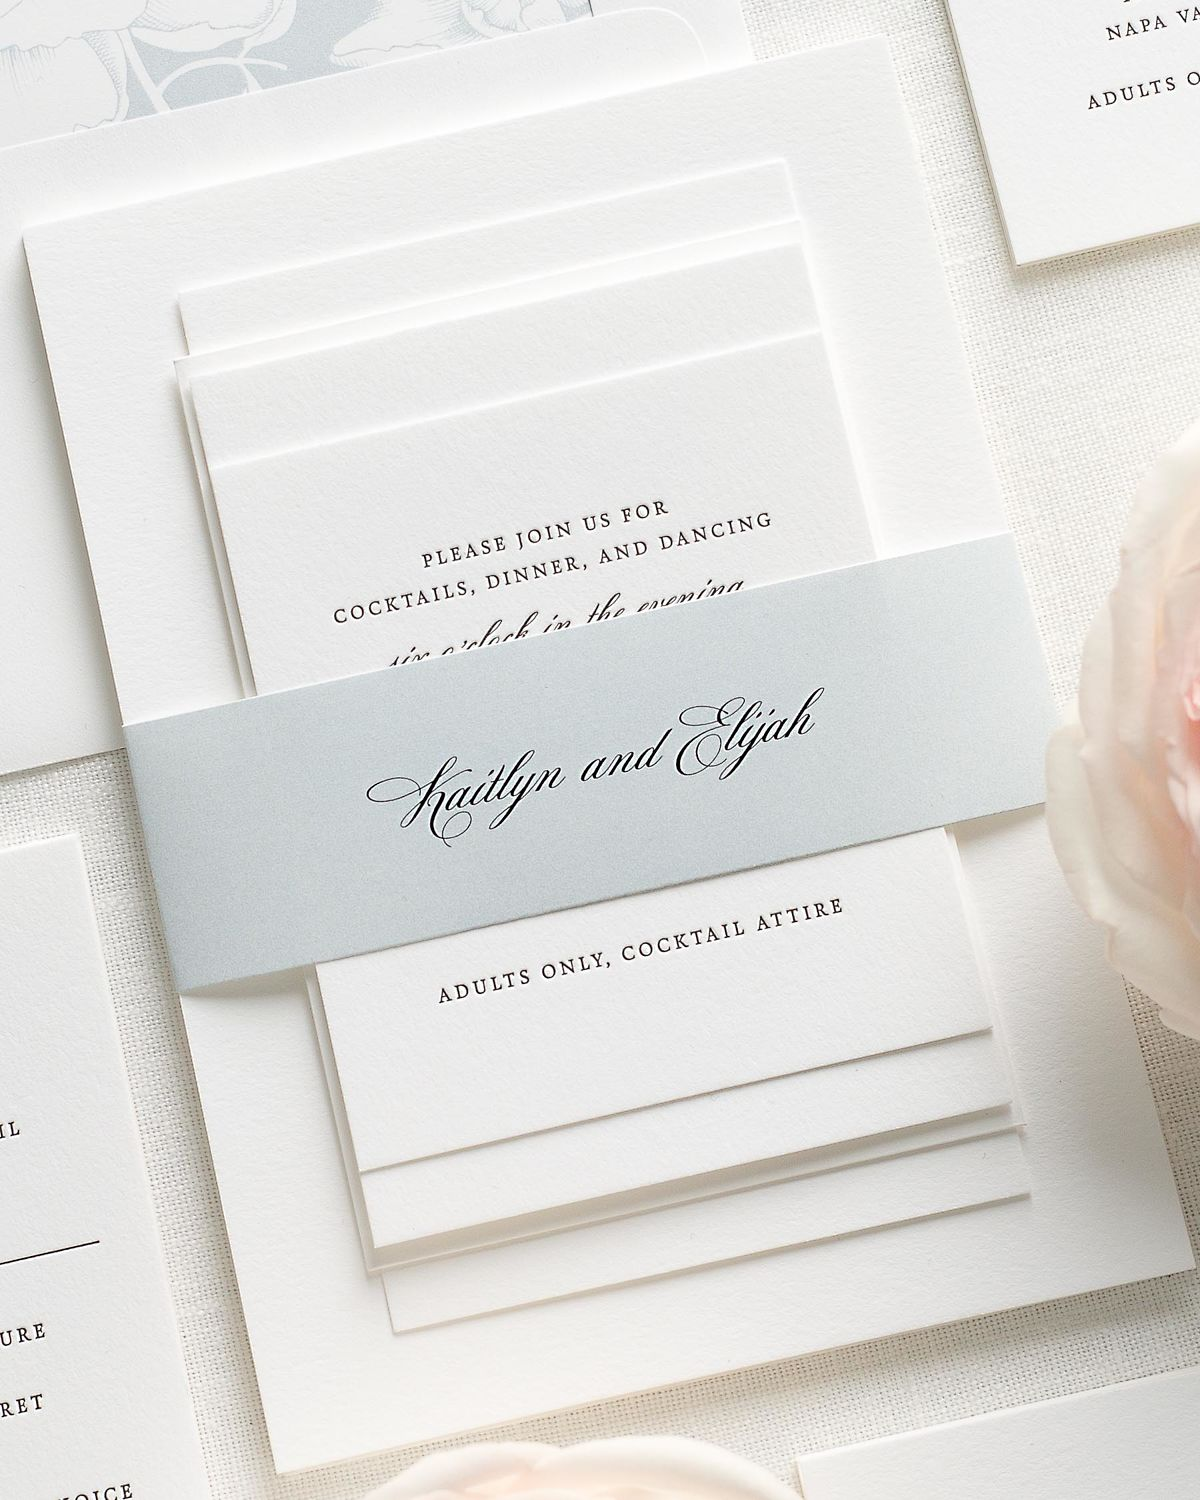 Wedding Invitations with Light Blue Belly Band and Letterpress Printing